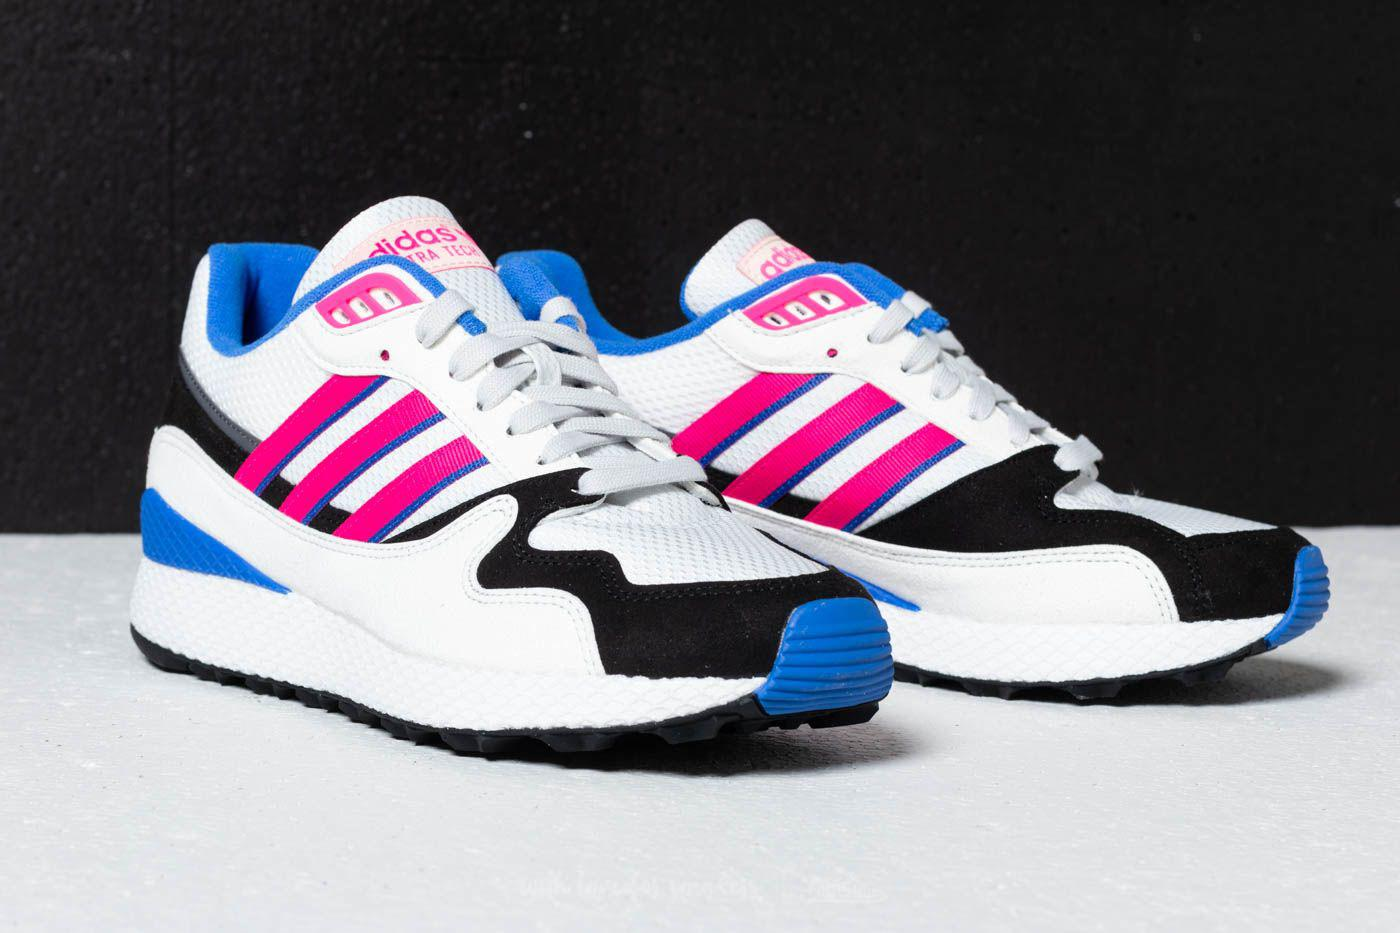 2a6a59dcc6ad3 Lyst - adidas Originals Adidas Ultra Tech Crystal White  Shock Pink ...